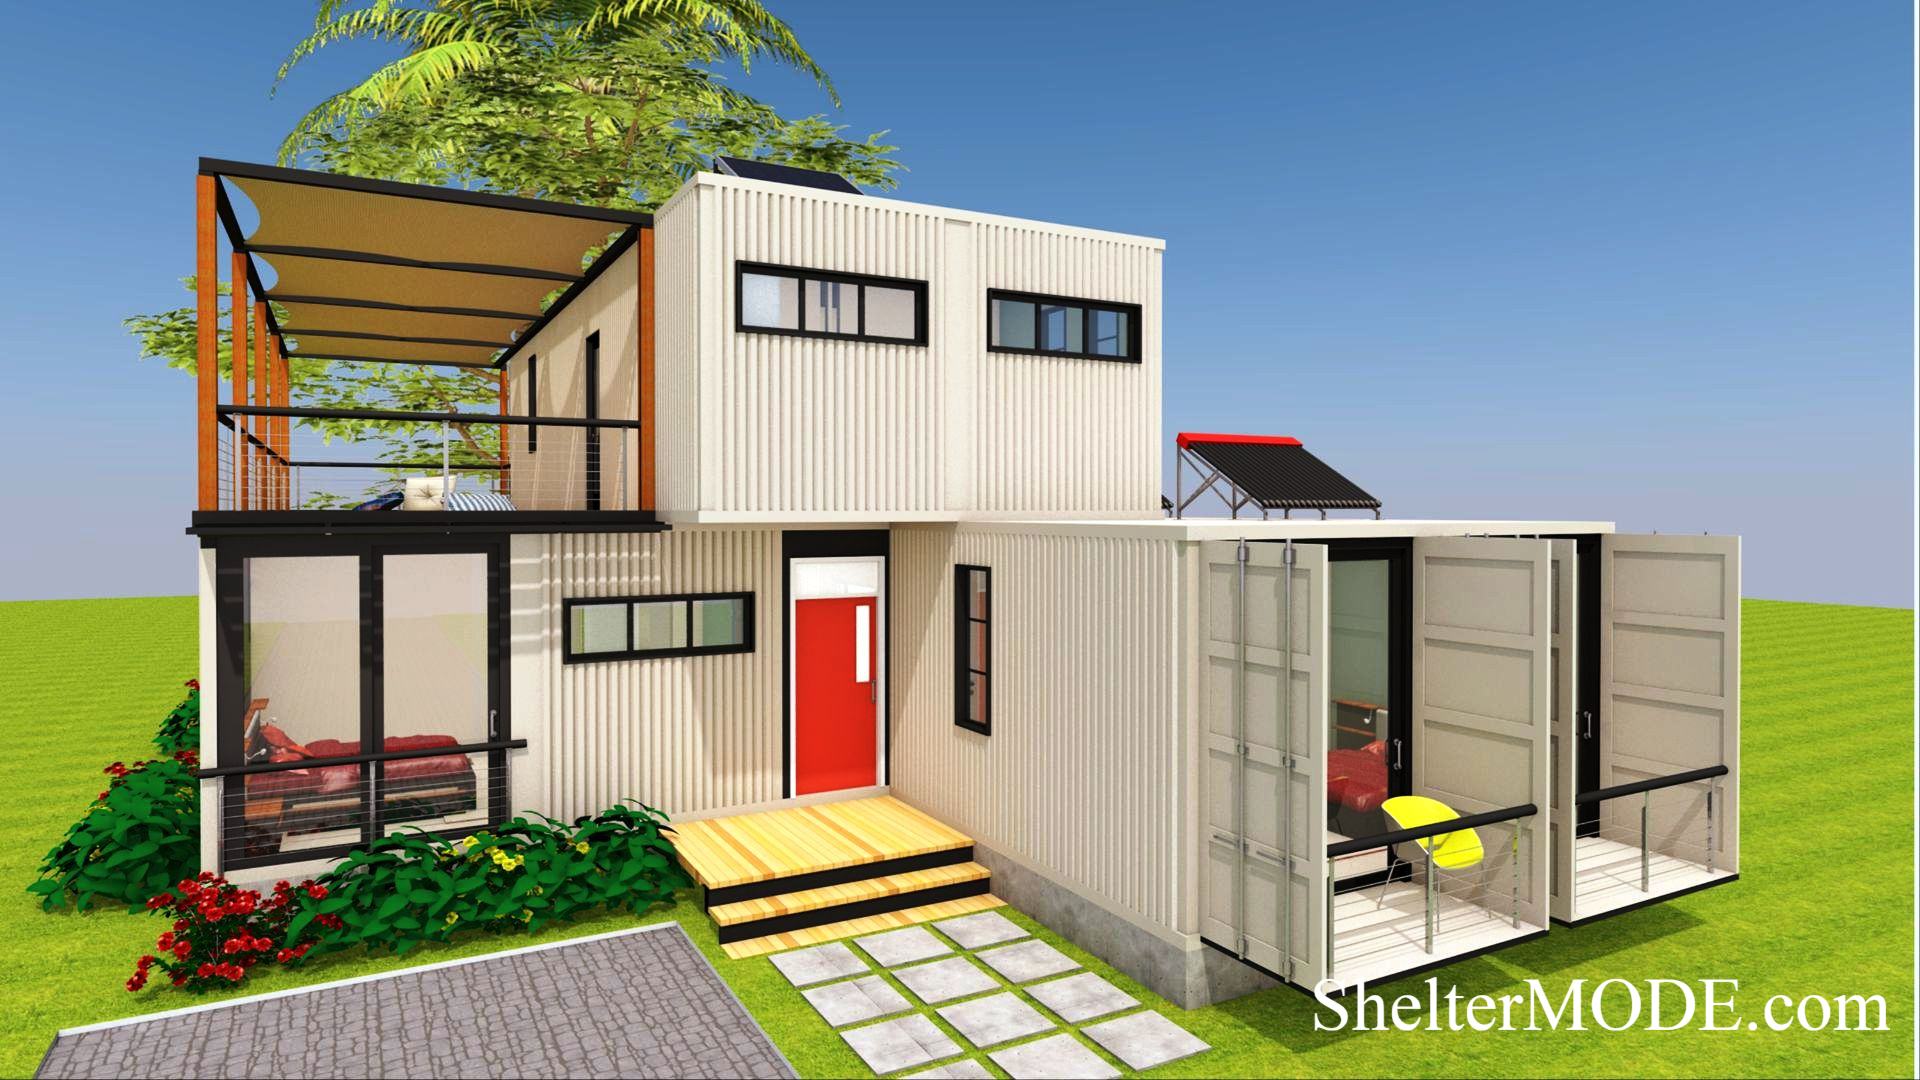 SHELTERMODE | LUXURY CONTAINER HOME DESIGN